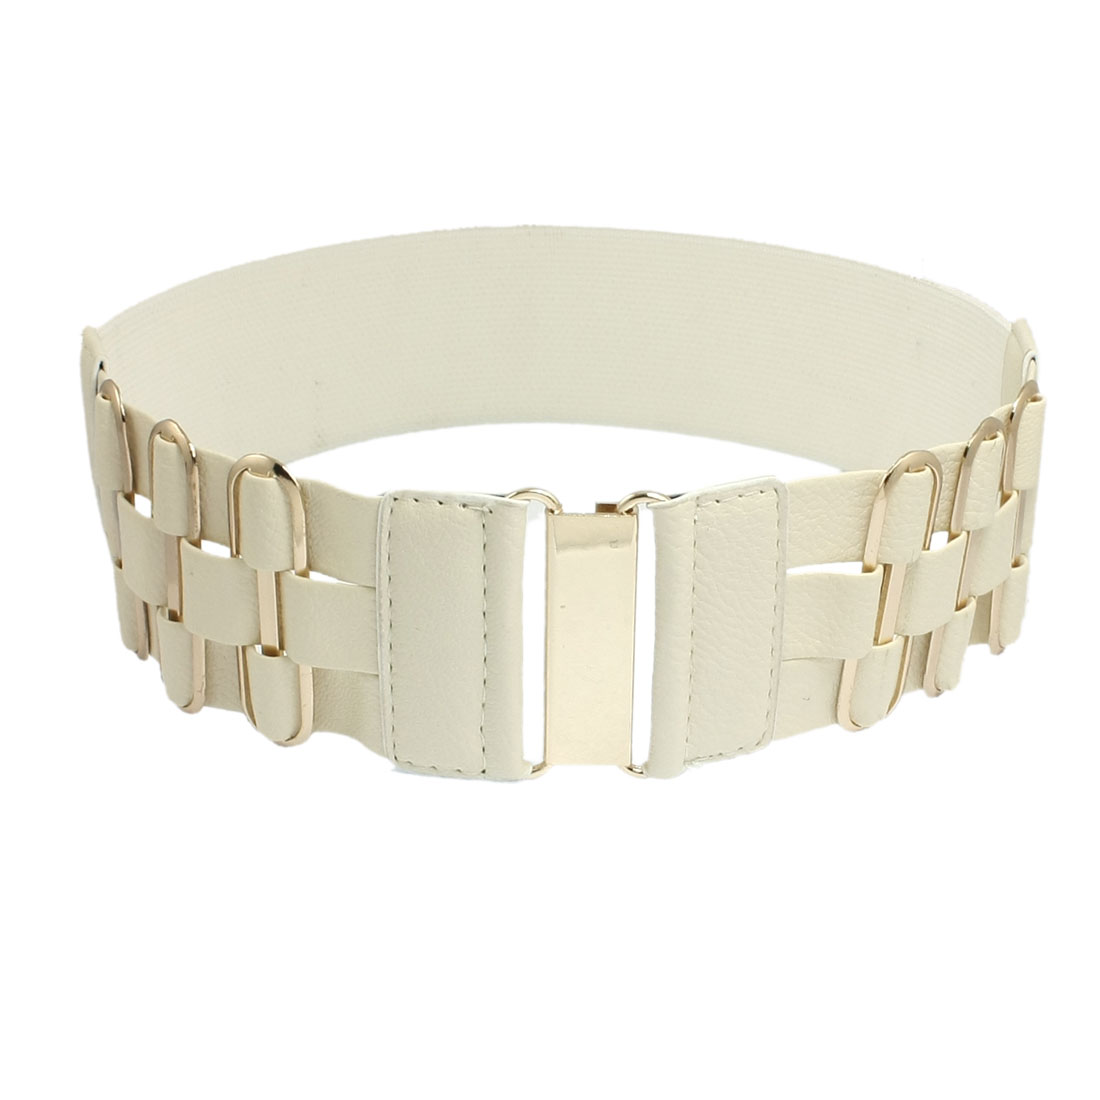 Interlocking Buckle Metal 6 Eyelets Decor Elastic Beige Waistband Belt for Ladies